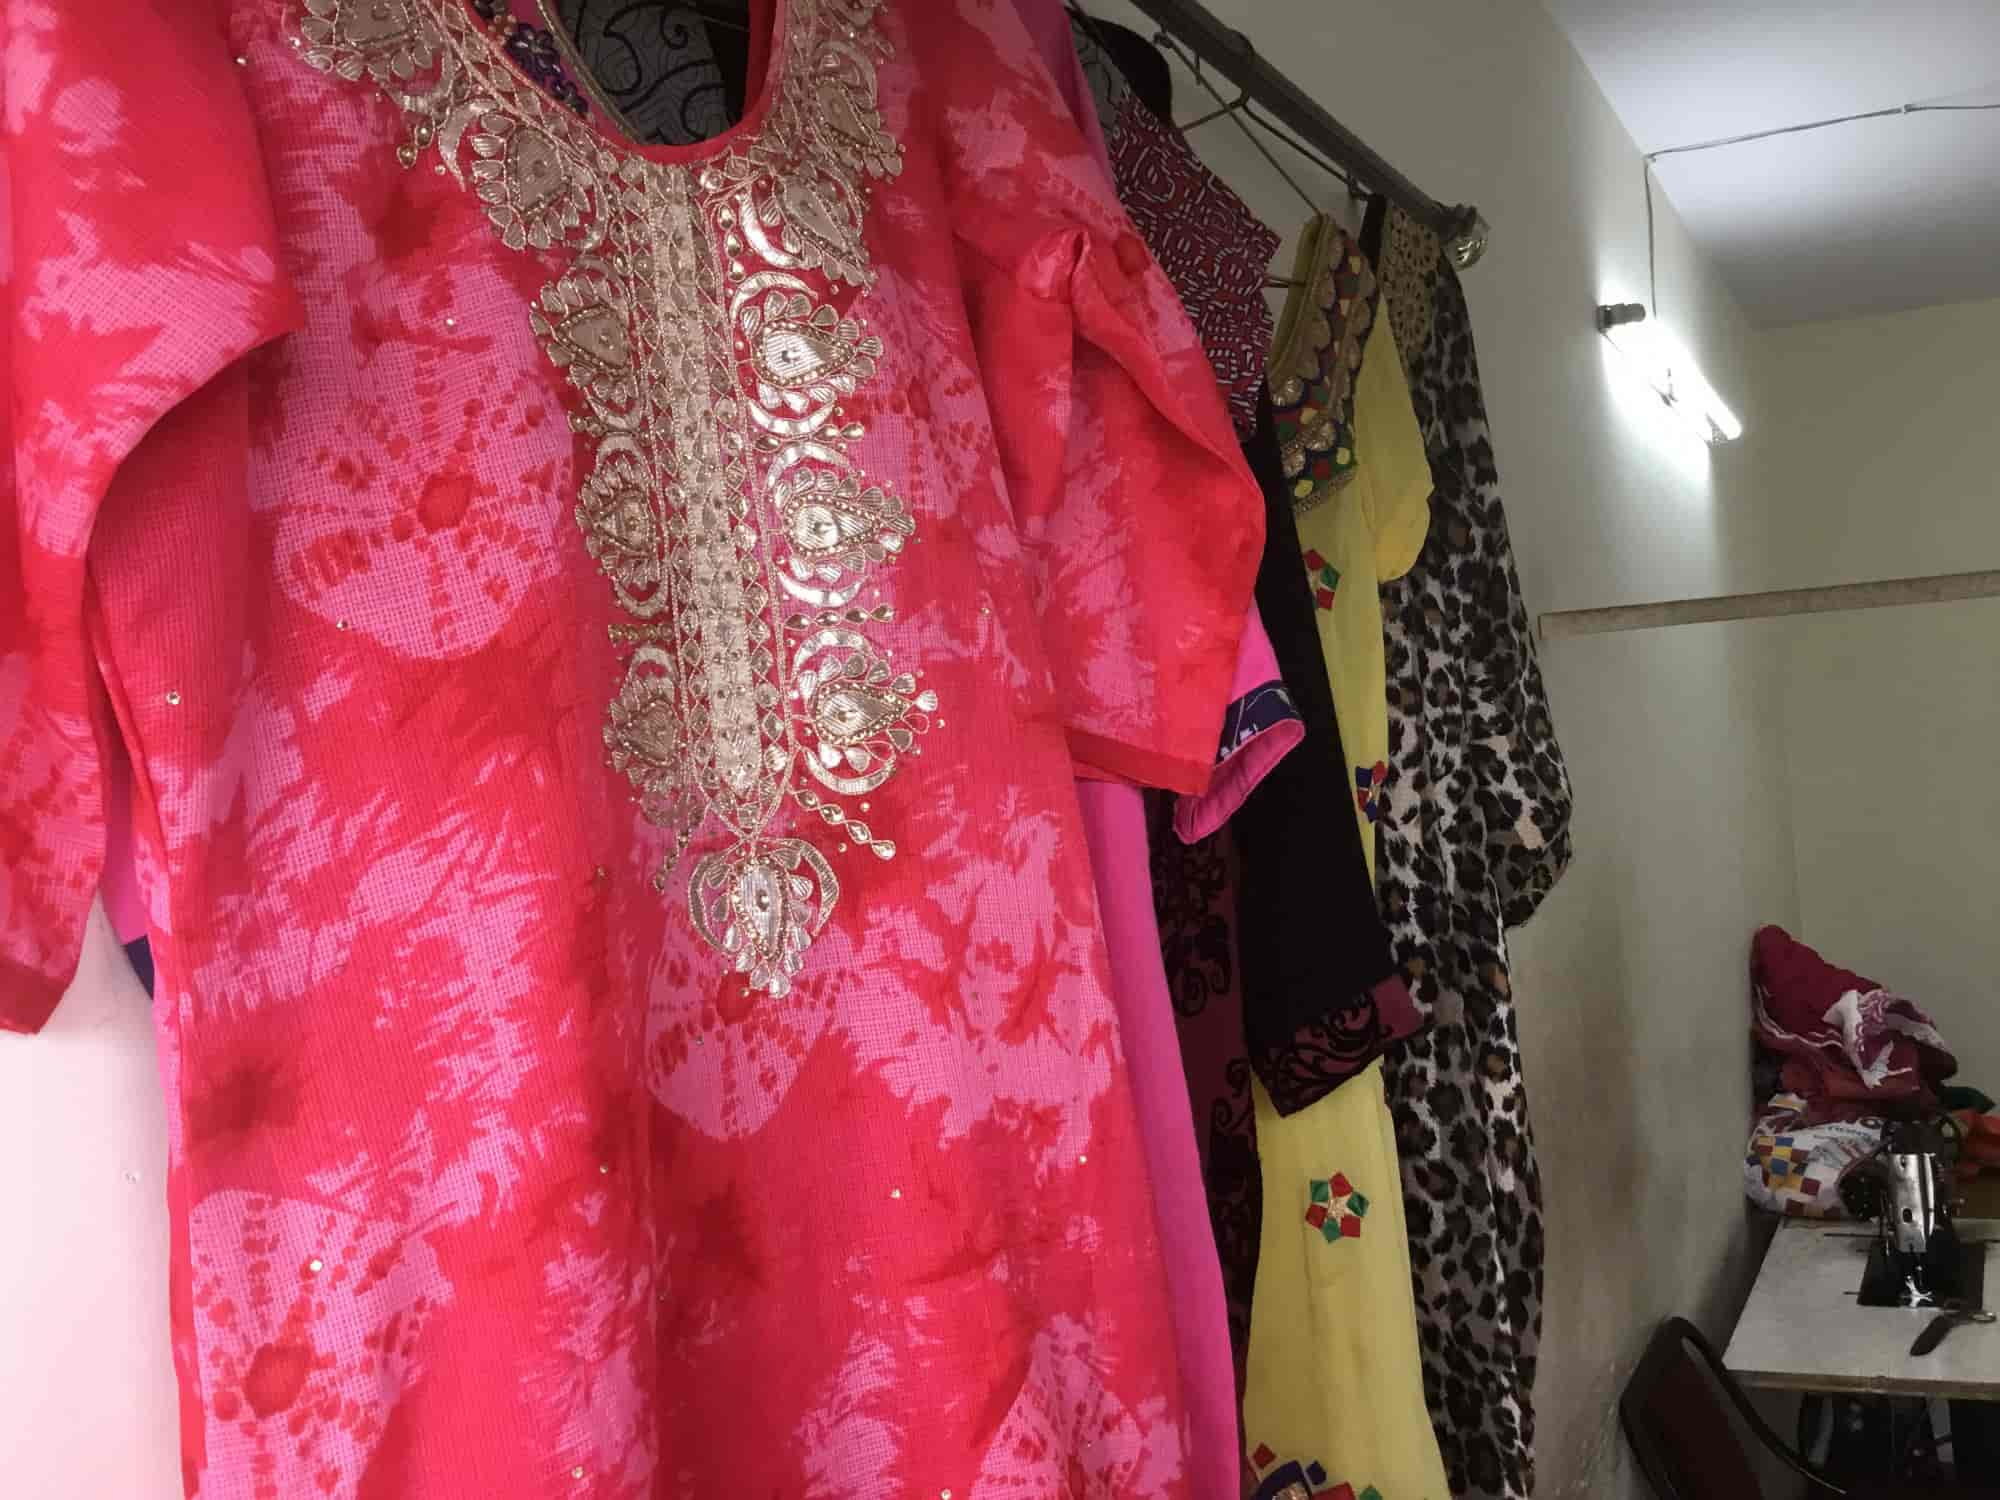 Fashion Designer Boutique Chandigarh Sector 42 Boutiques In Chandigarh Justdial